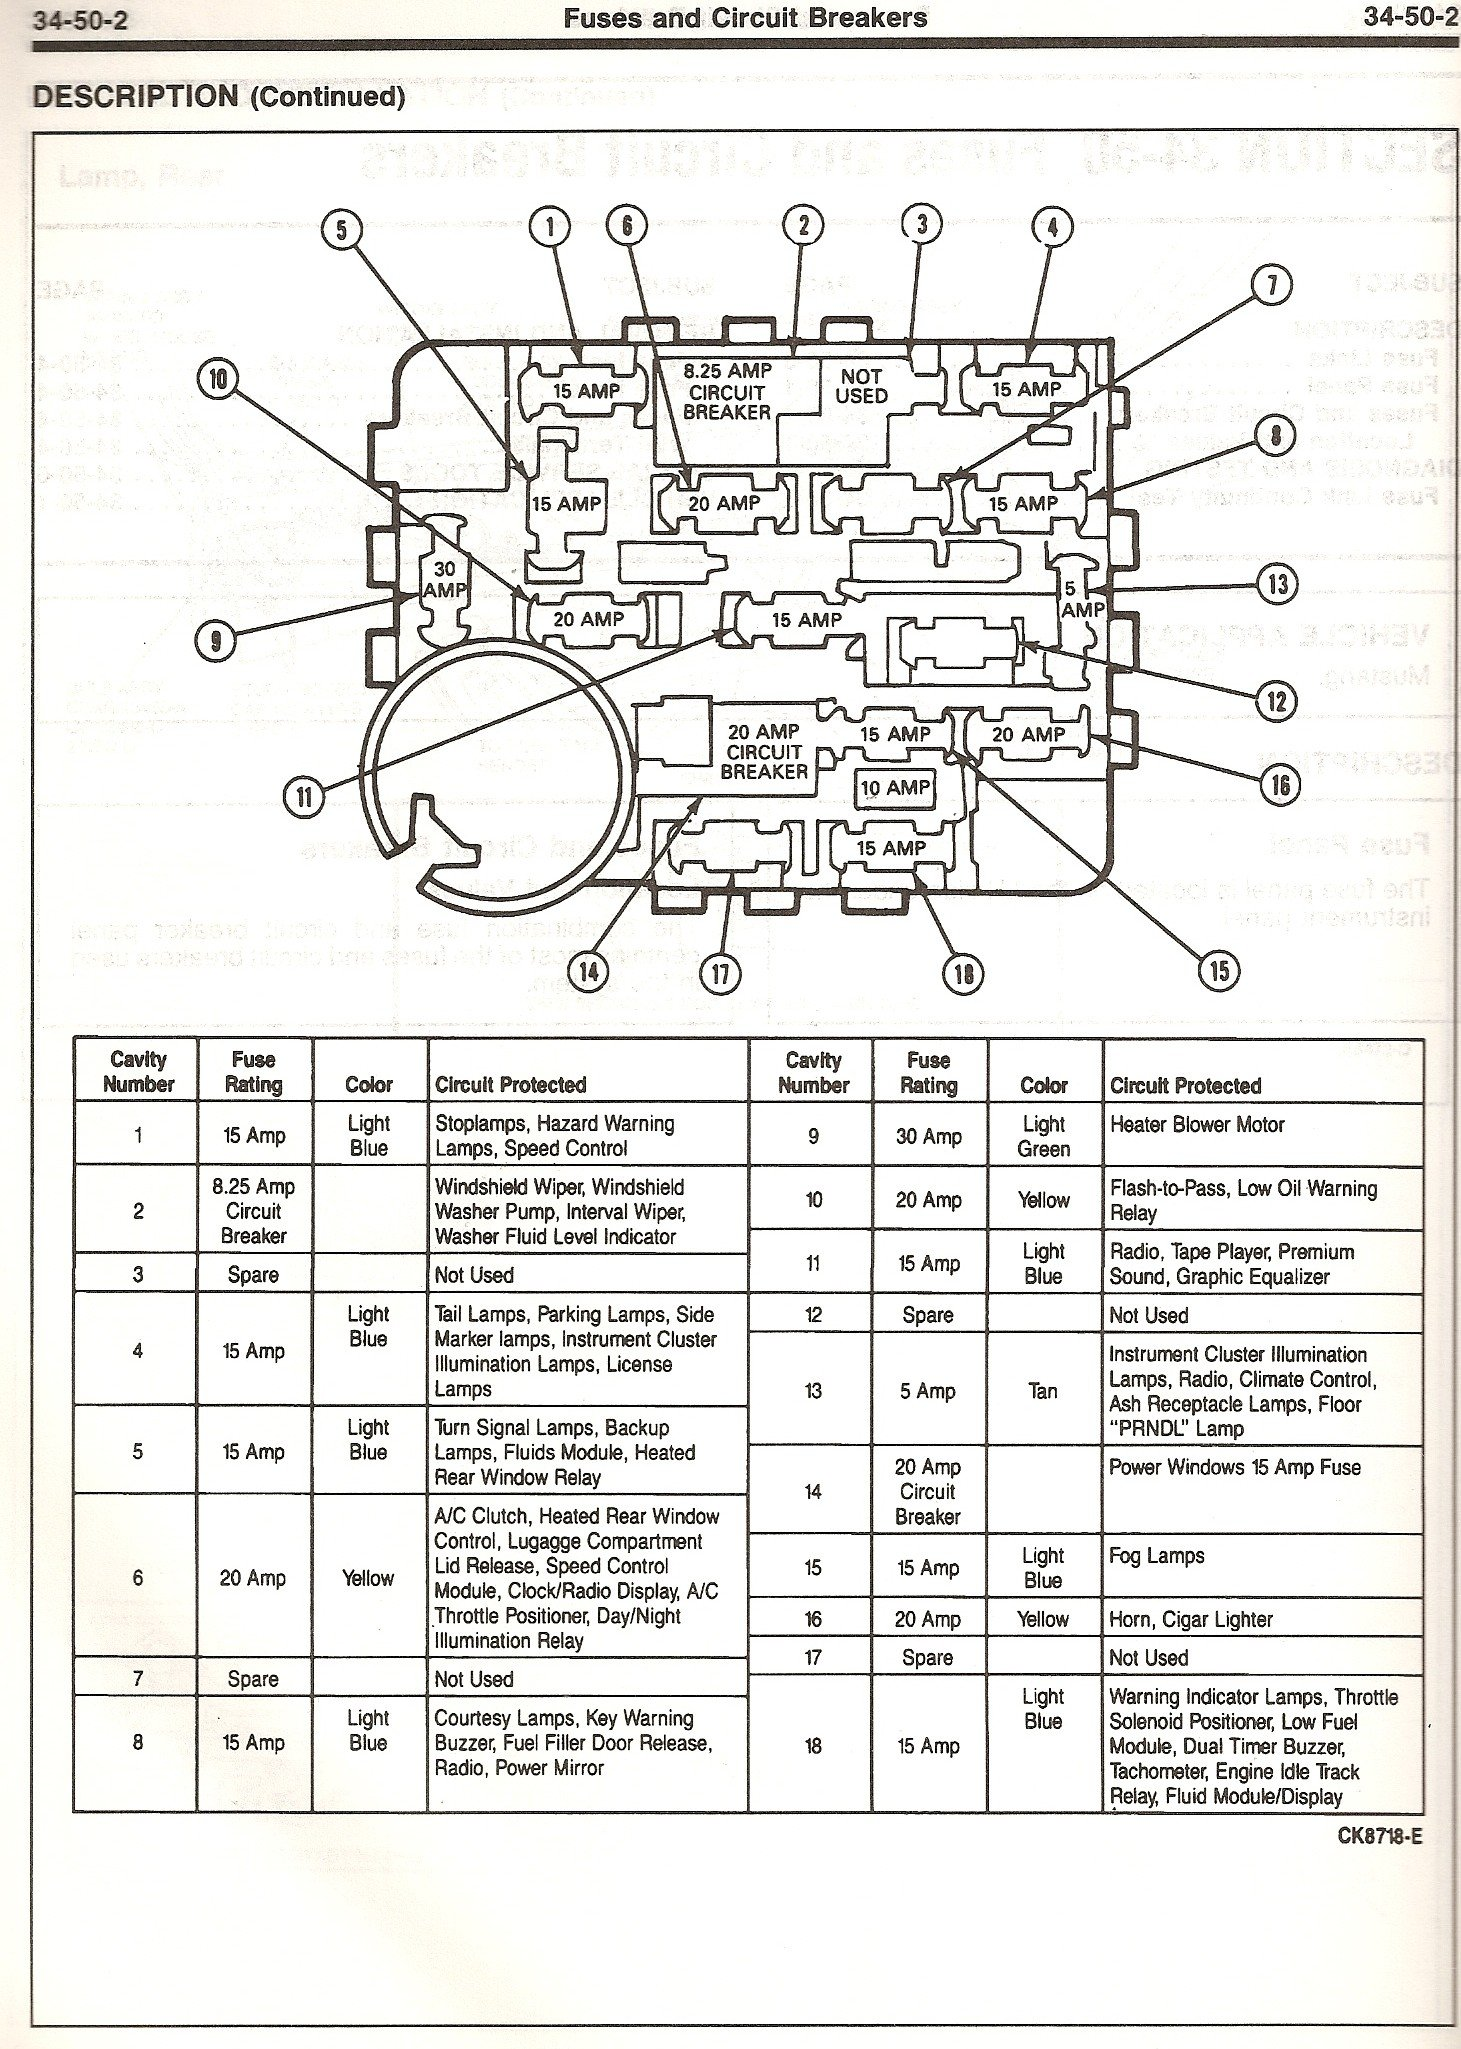 2002 Gmc Envoy Parts Diagram Washer Electrical Wiring 1990 2 3 Mustang Missing Fuse Panel Ford Slt Engine